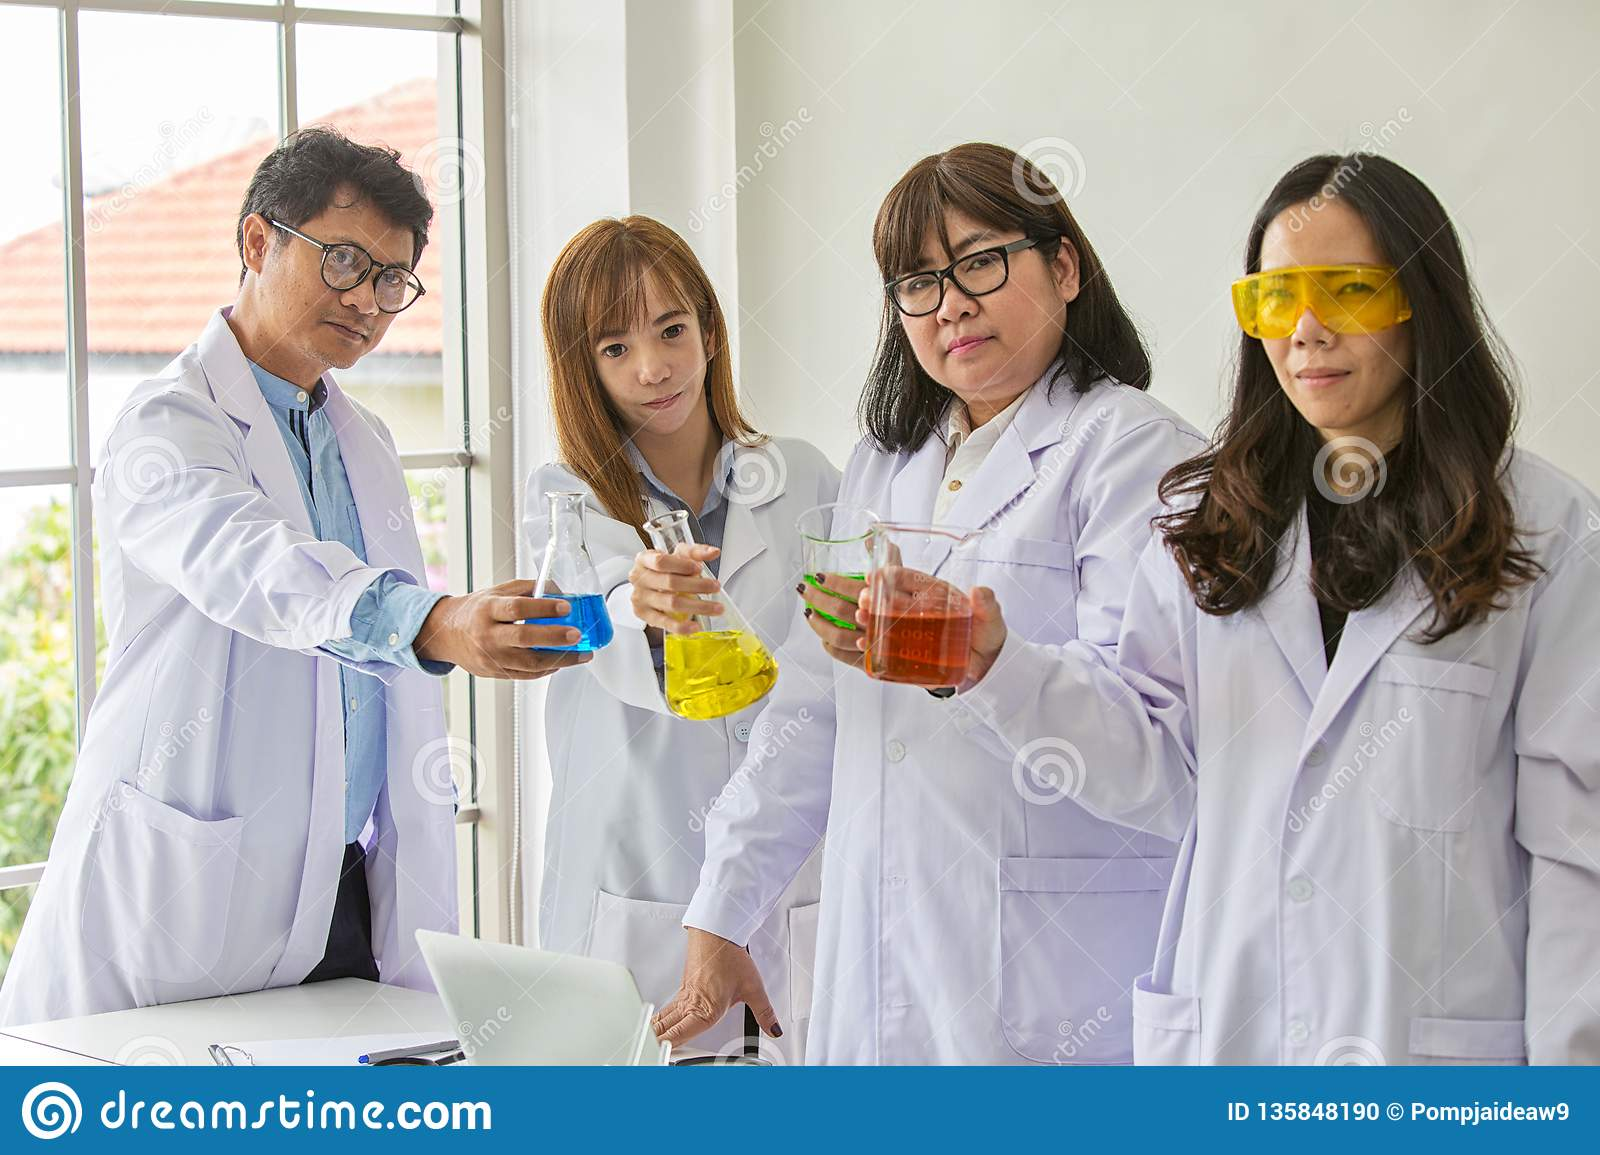 Science Test  Chemist Scientific Testing Quality  Group Scientist